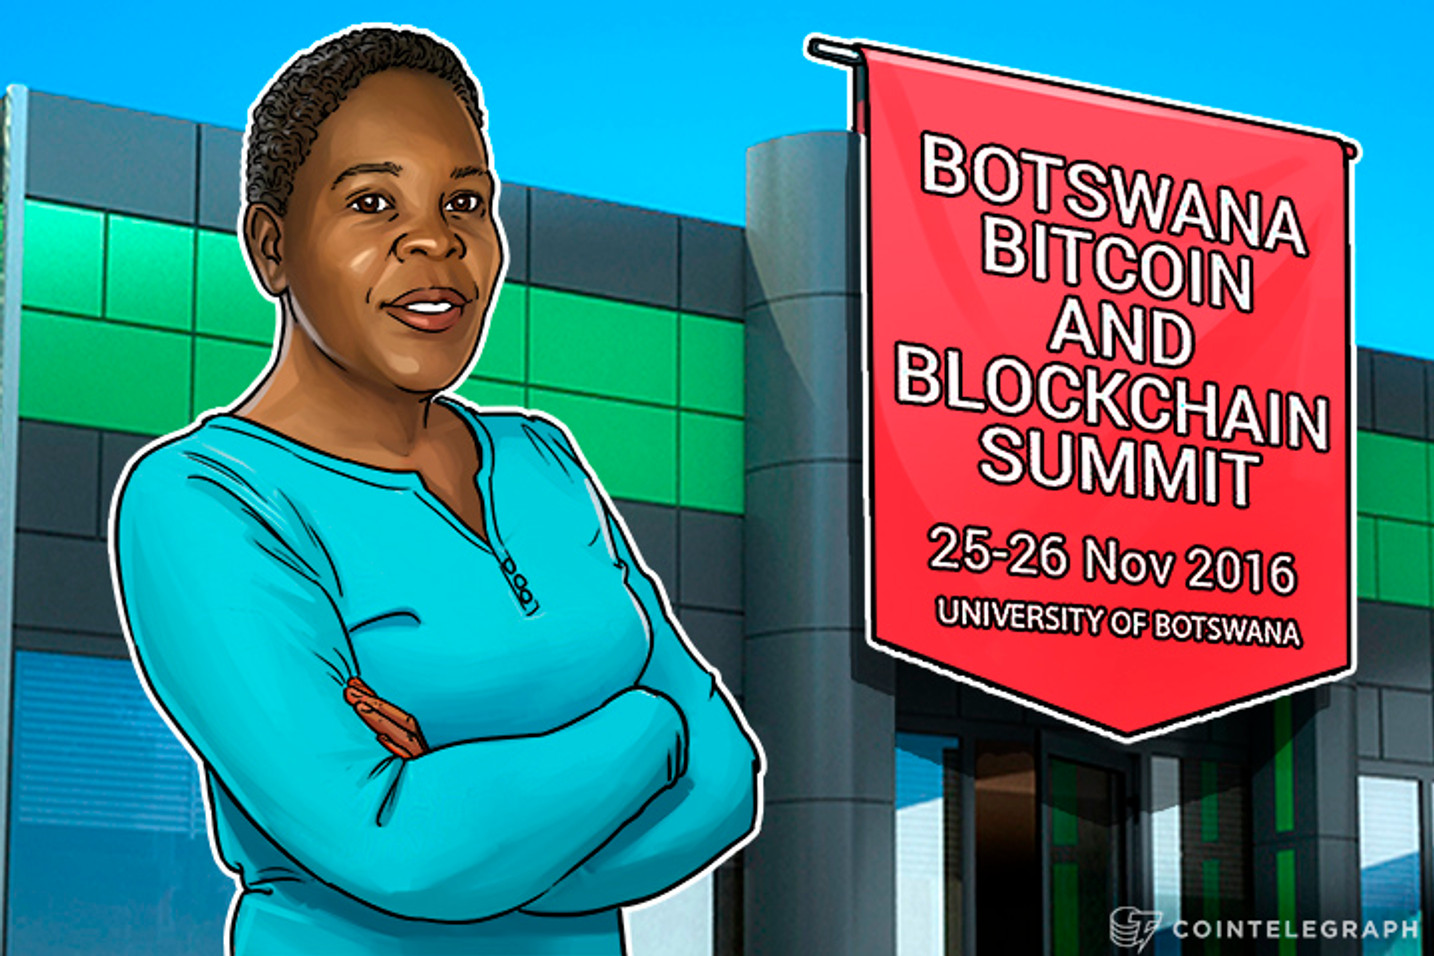 Botswana Bitcoin & Blockchain Summit Will Train Developers To Build Apps